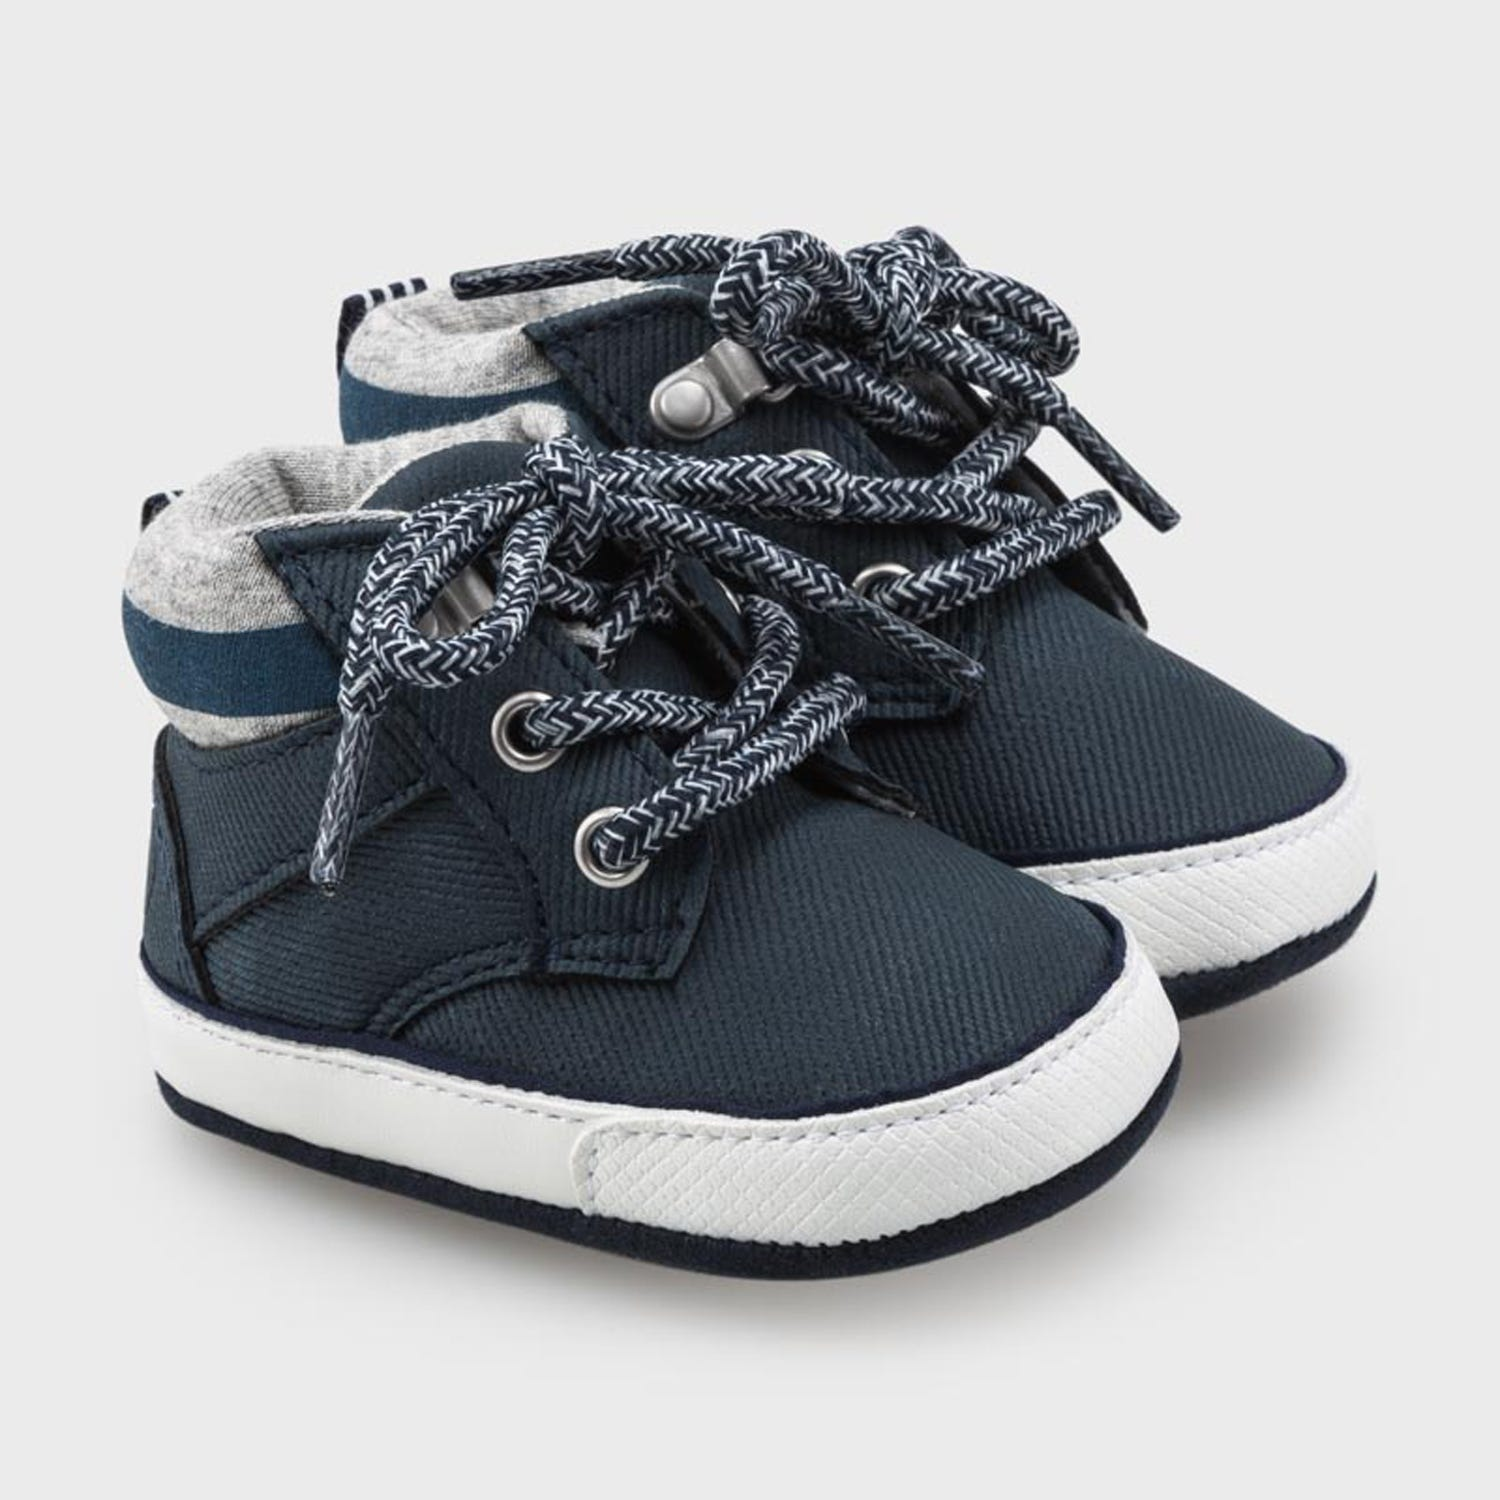 Buy Boys Shoes Online   Shop Baby Boy Shoes